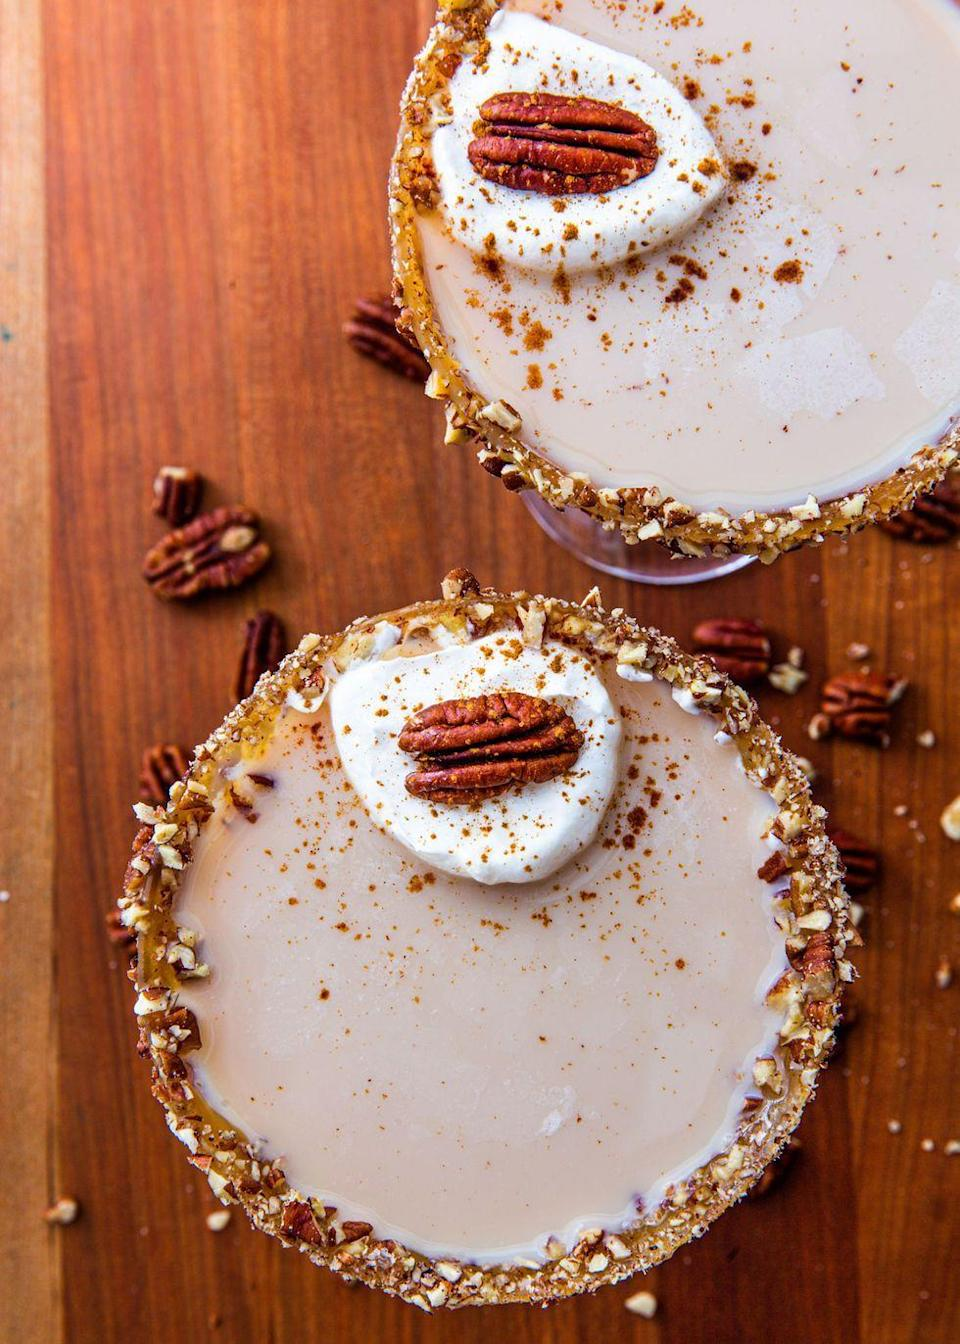 "<p>These martinis might <em>look</em> innocent, but trust us, they're STRONG.</p><p>Get the recipe from <a href=""https://www.delish.com/cooking/recipe-ideas/a24132507/pecan-pie-martini-recipe/"" rel=""nofollow noopener"" target=""_blank"" data-ylk=""slk:Delish"" class=""link rapid-noclick-resp"">Delish</a>.</p>"